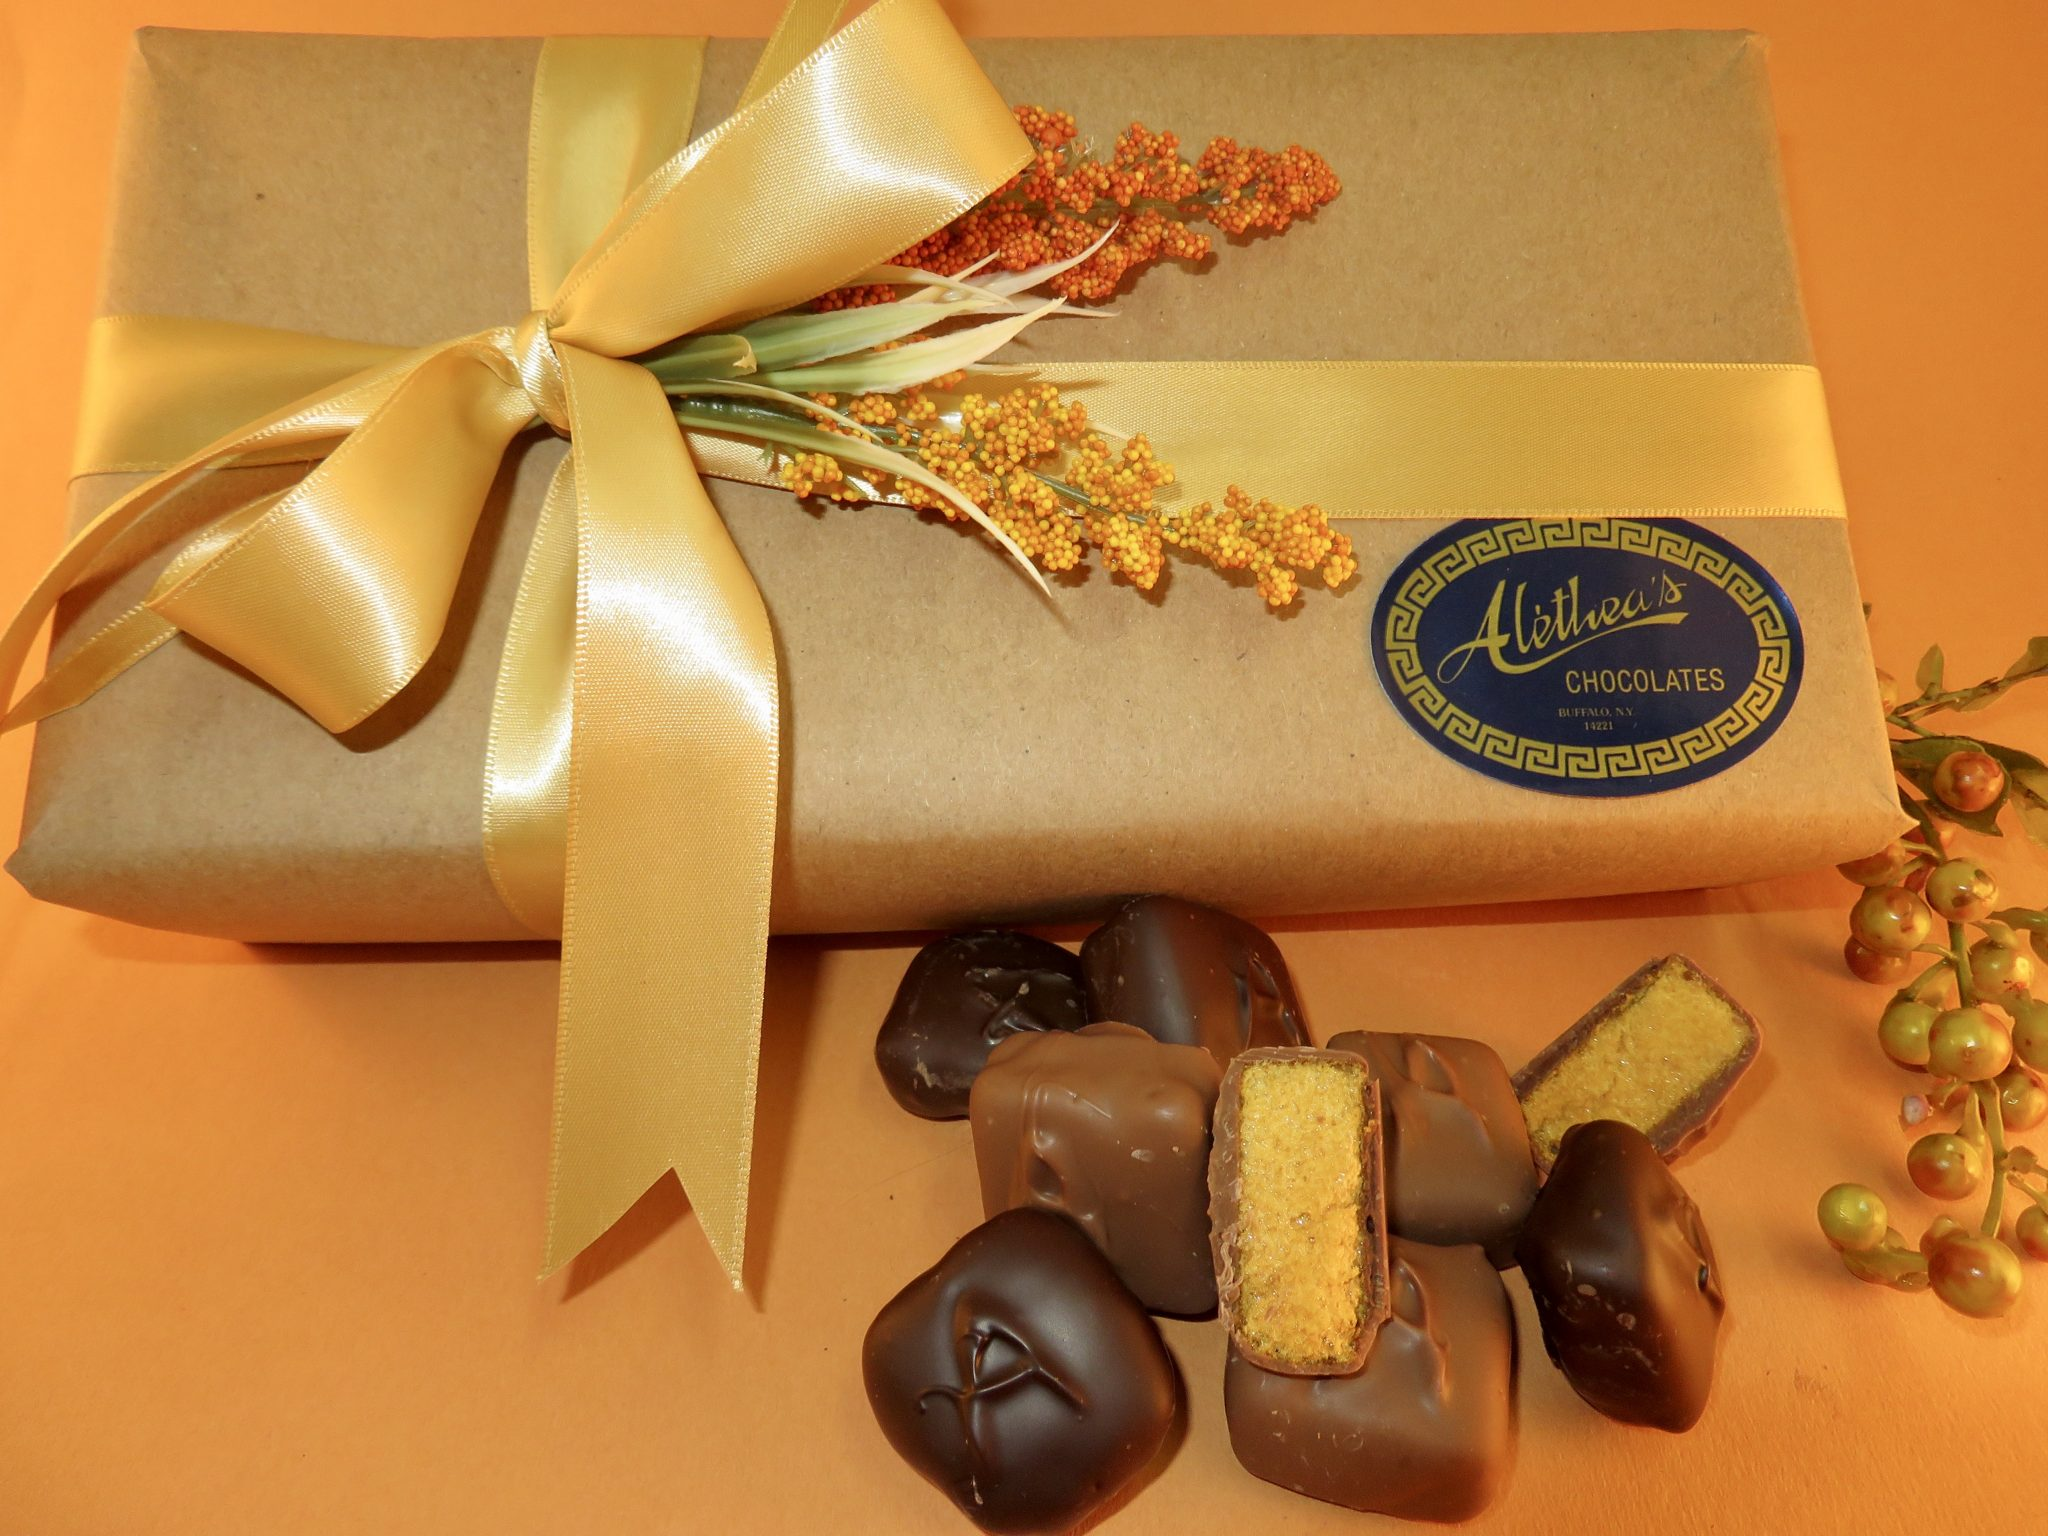 Elite Fall decorated box of gourmet Sponge Candy